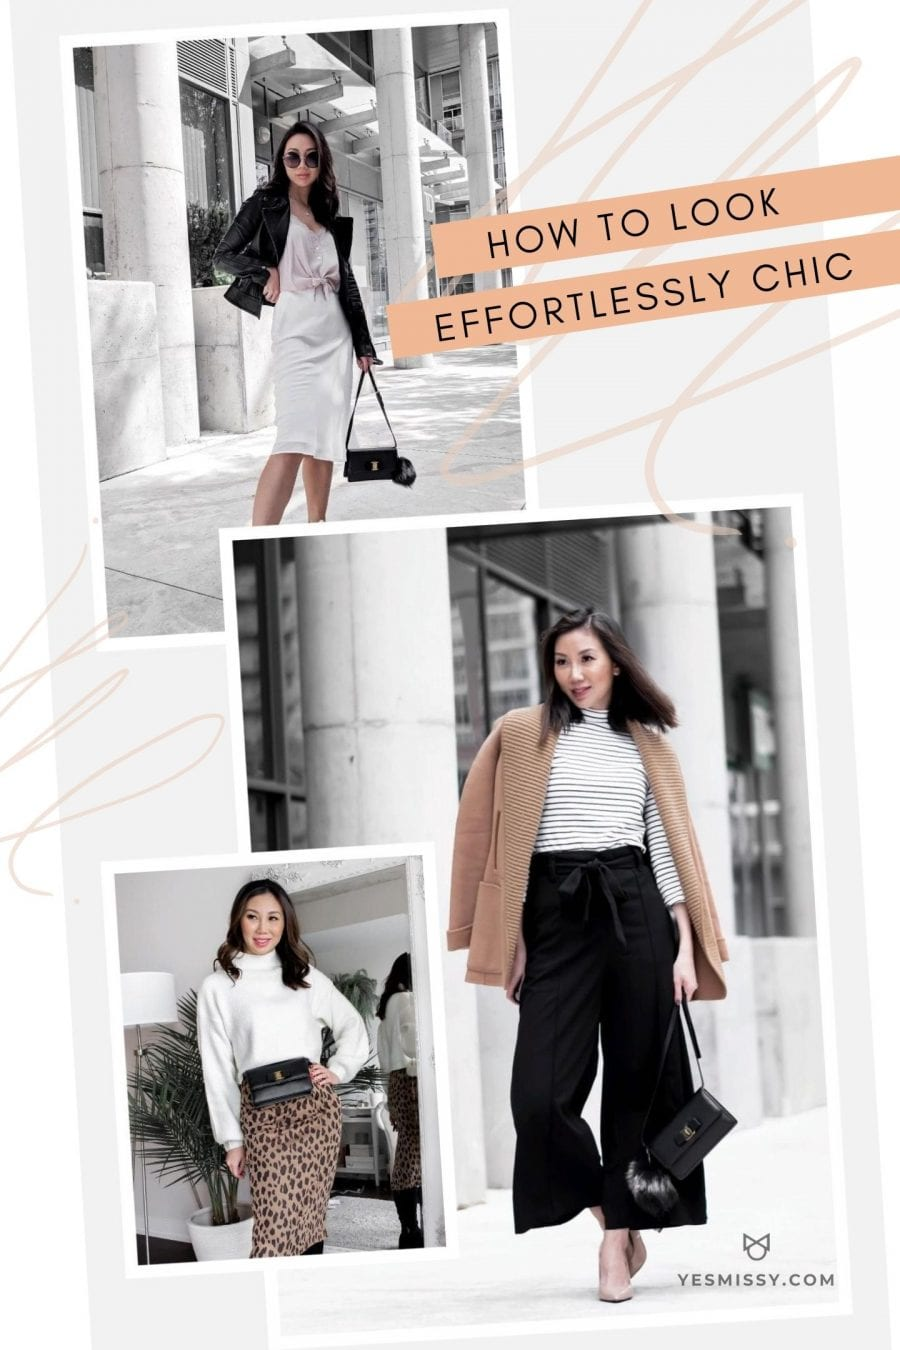 How to look effortlessly chic - 5 tips to looking stylish and put together without trying